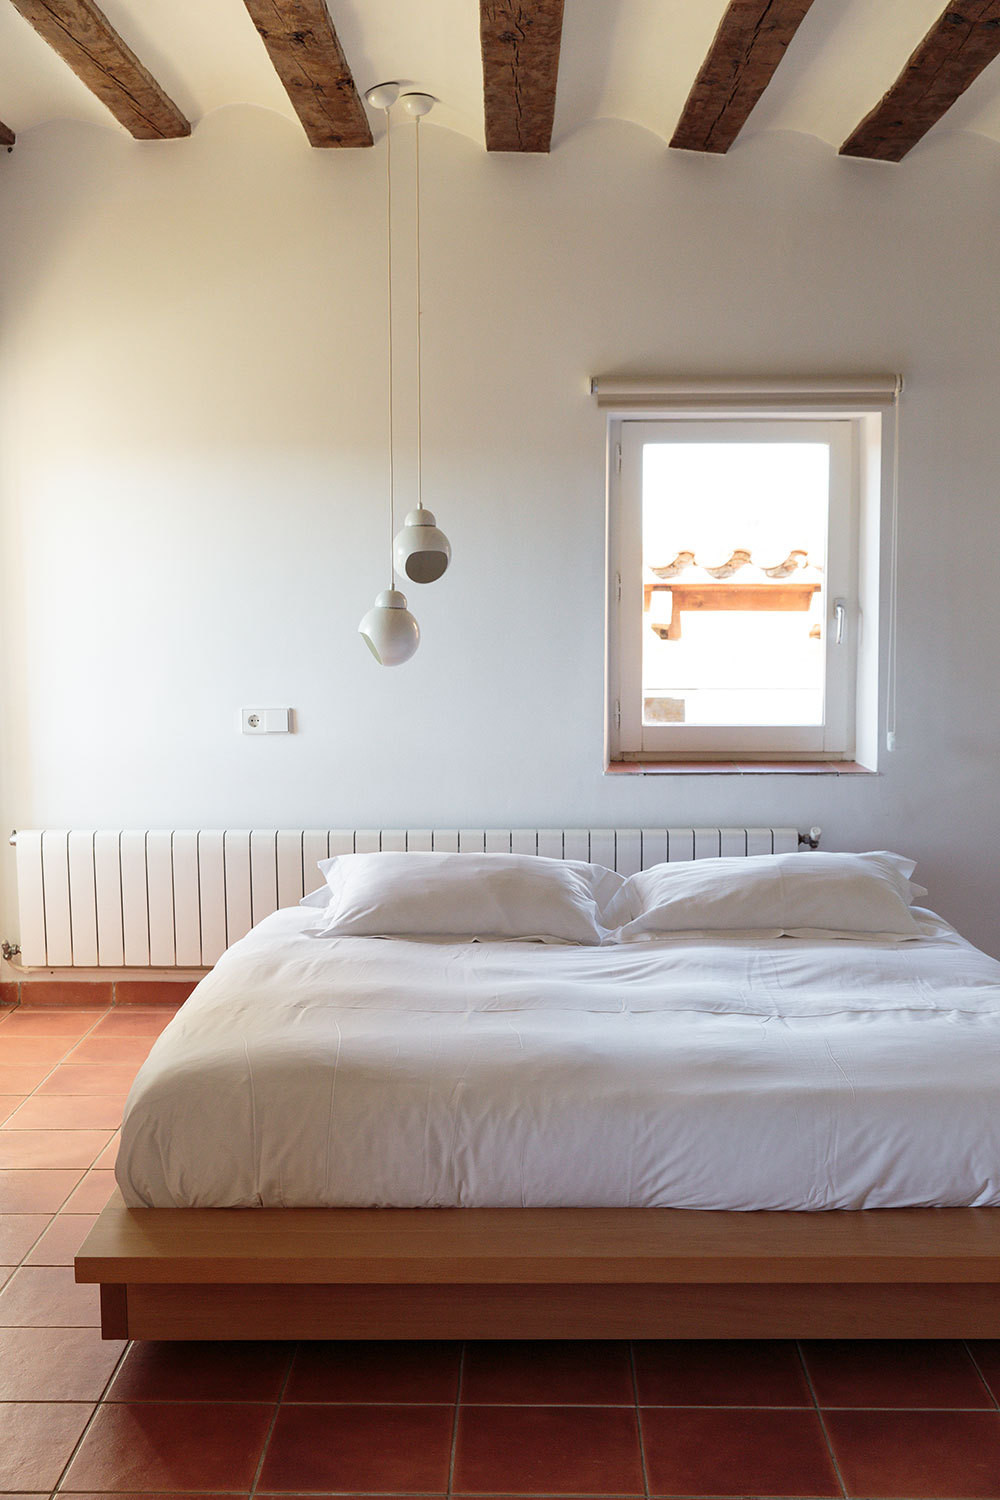 Alvar Aalto lighting above a platform bed in the Nordic guest room.